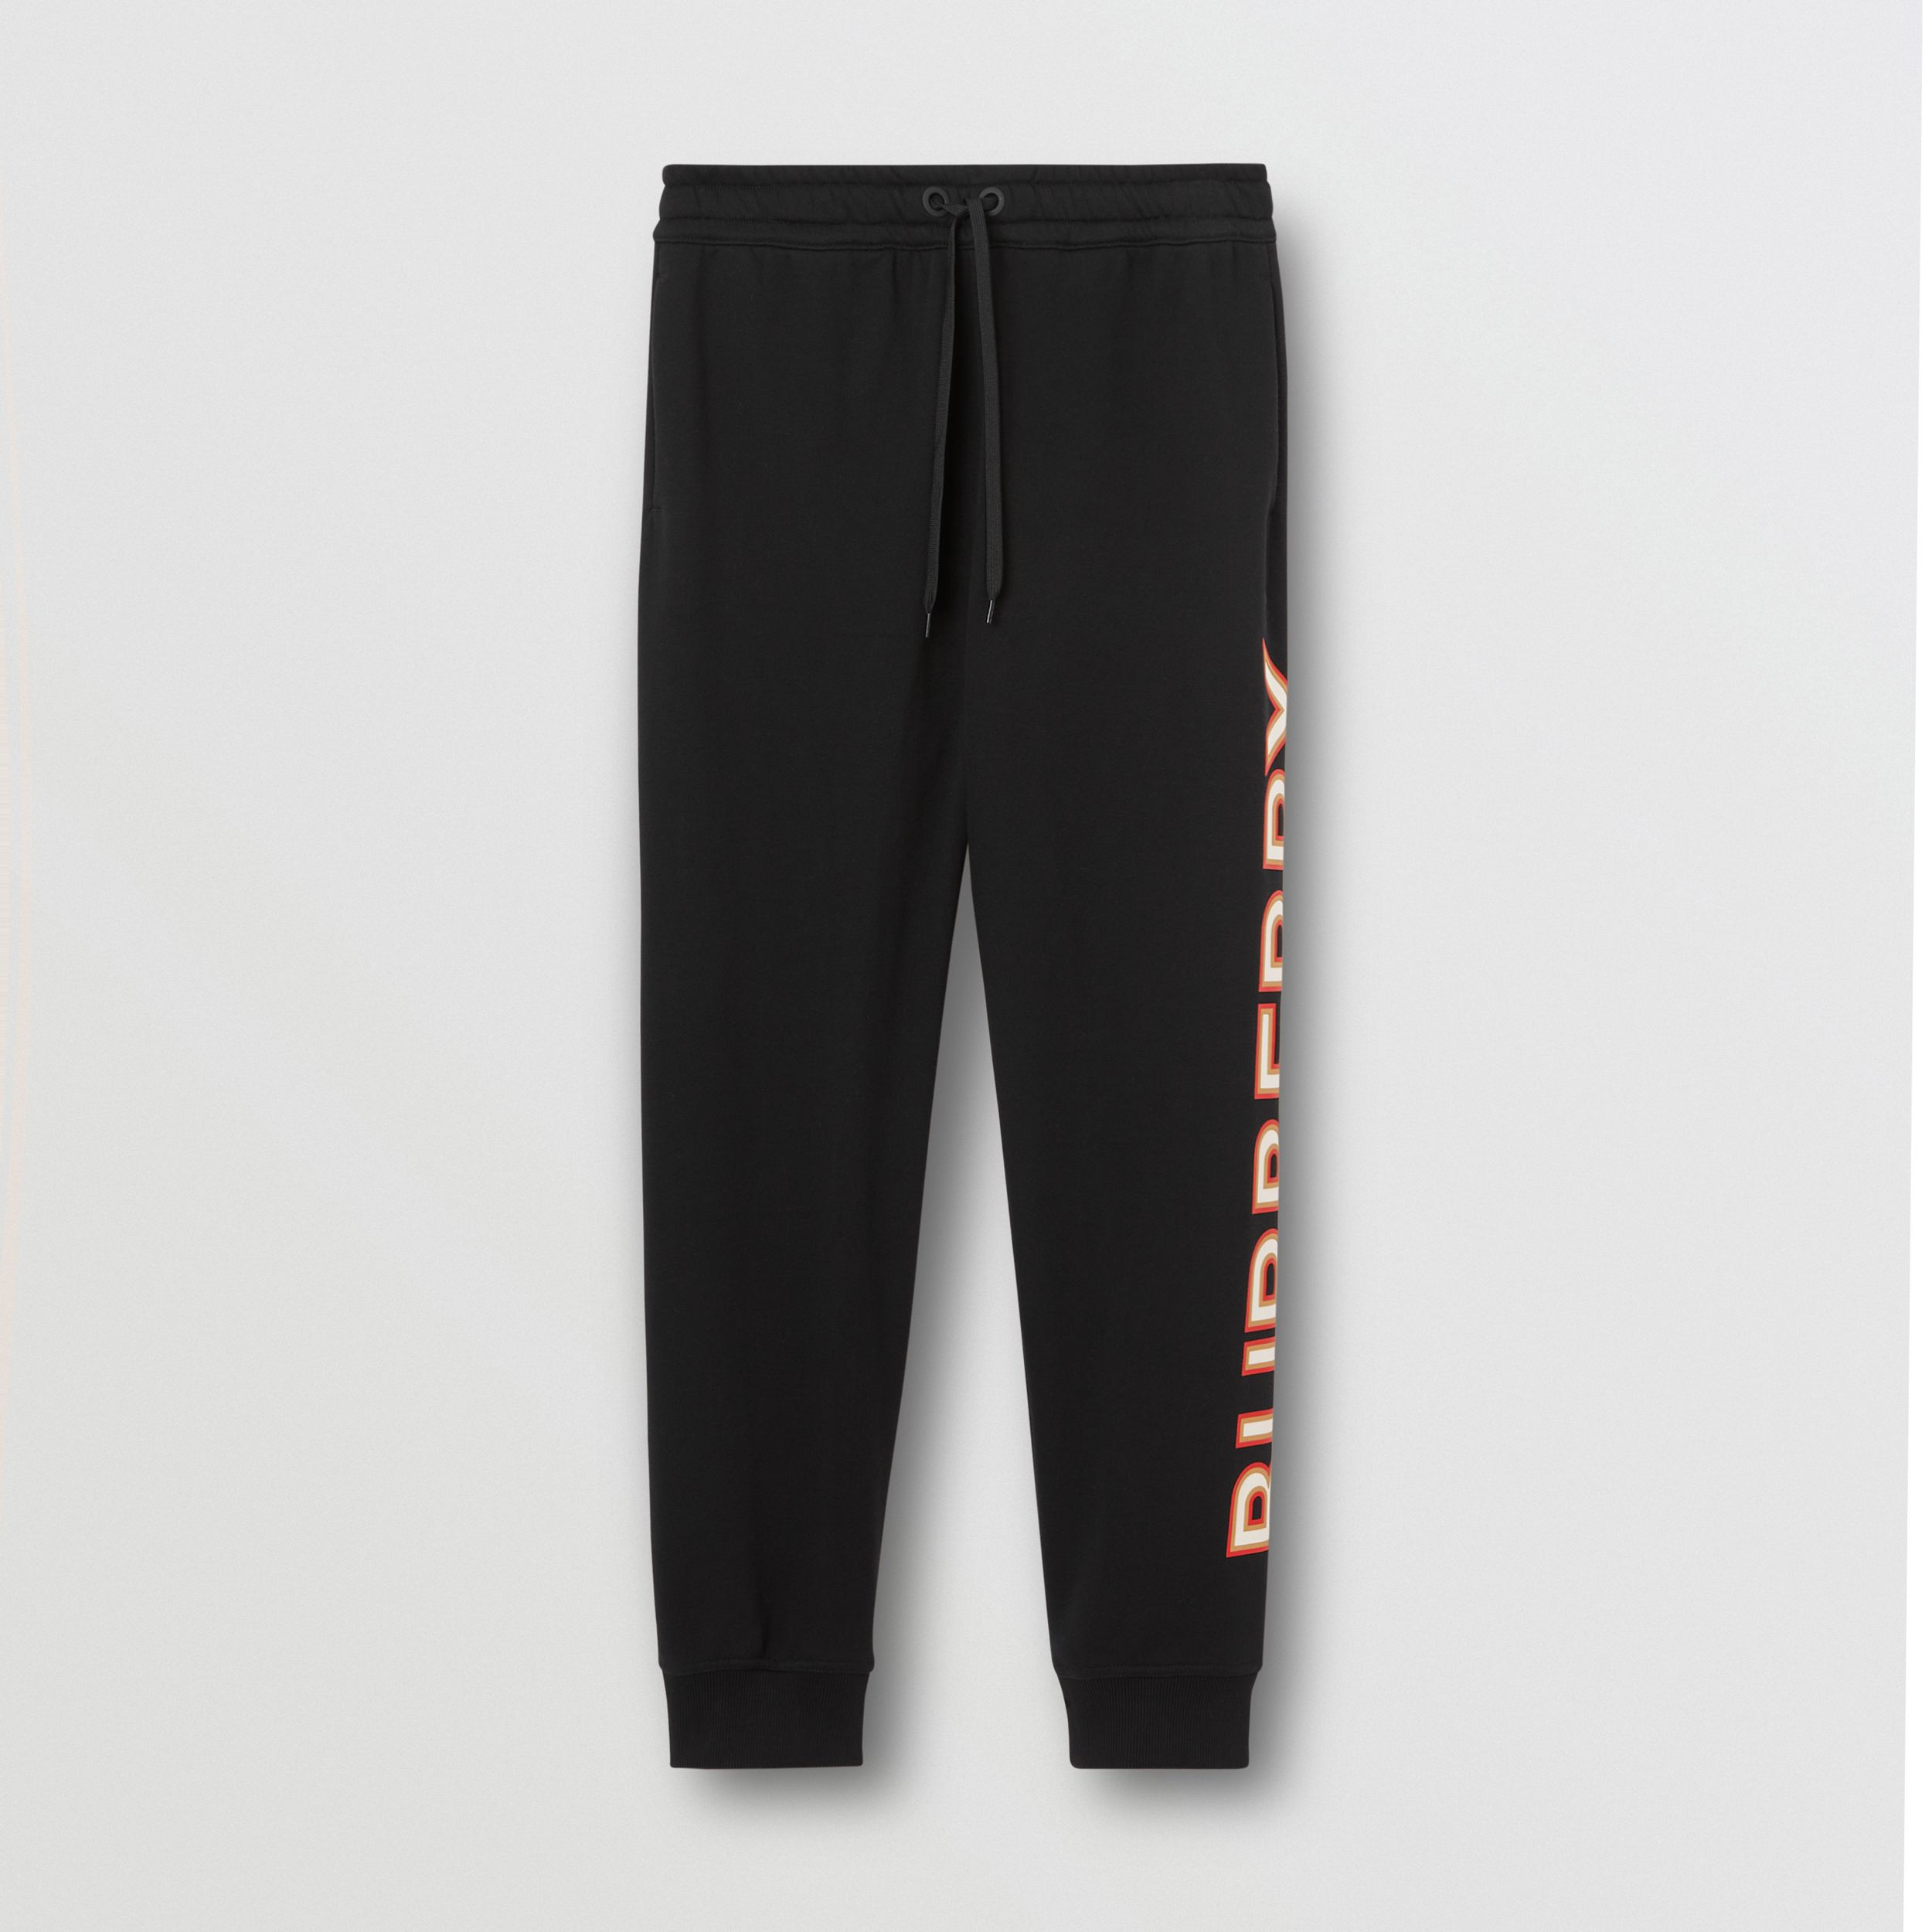 Logo Print Cotton Jogging Pants in Black - Women | Burberry - 4